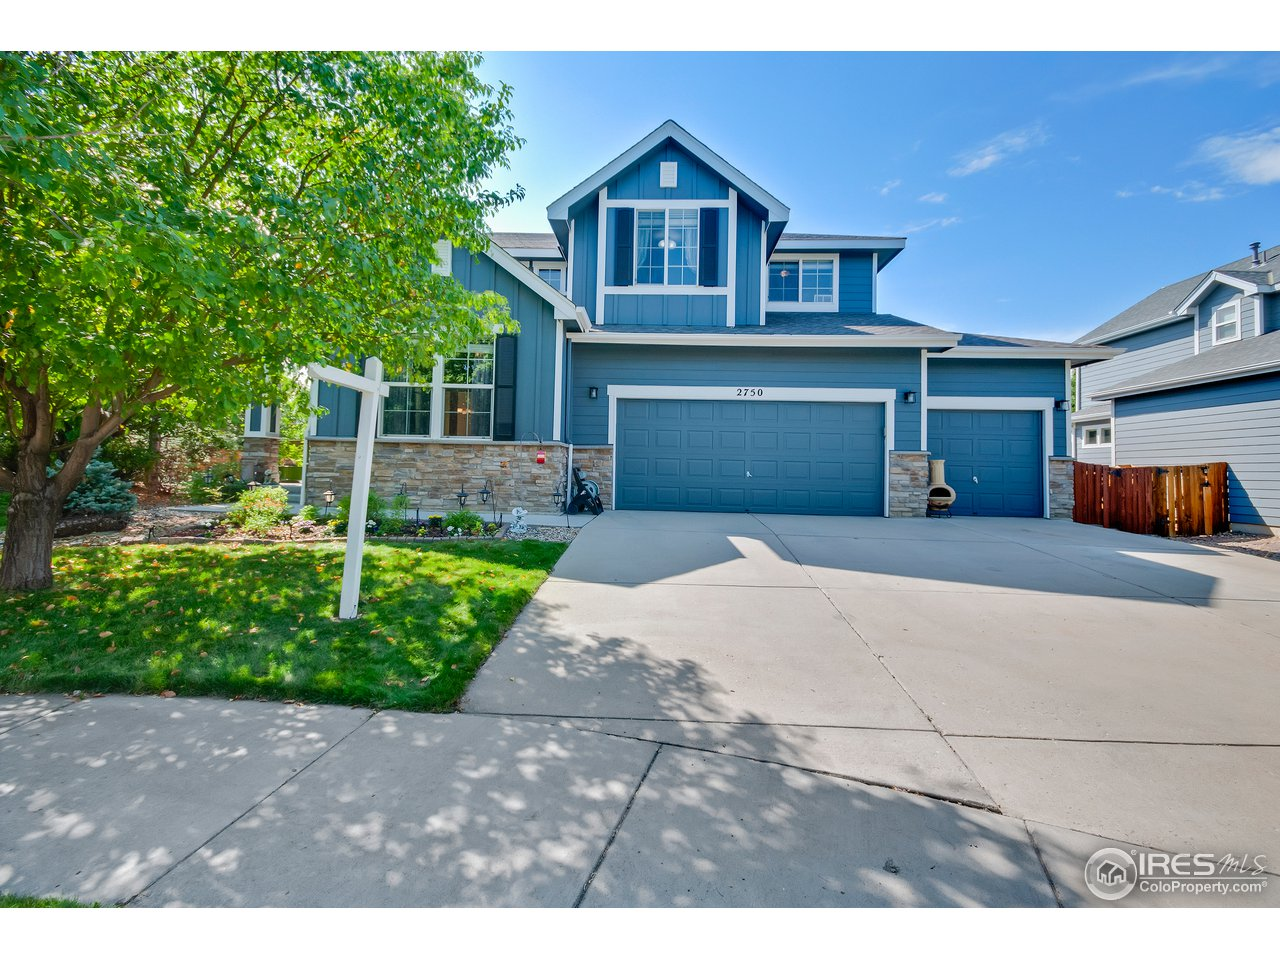 2750 Sunset Way, Erie CO 80516